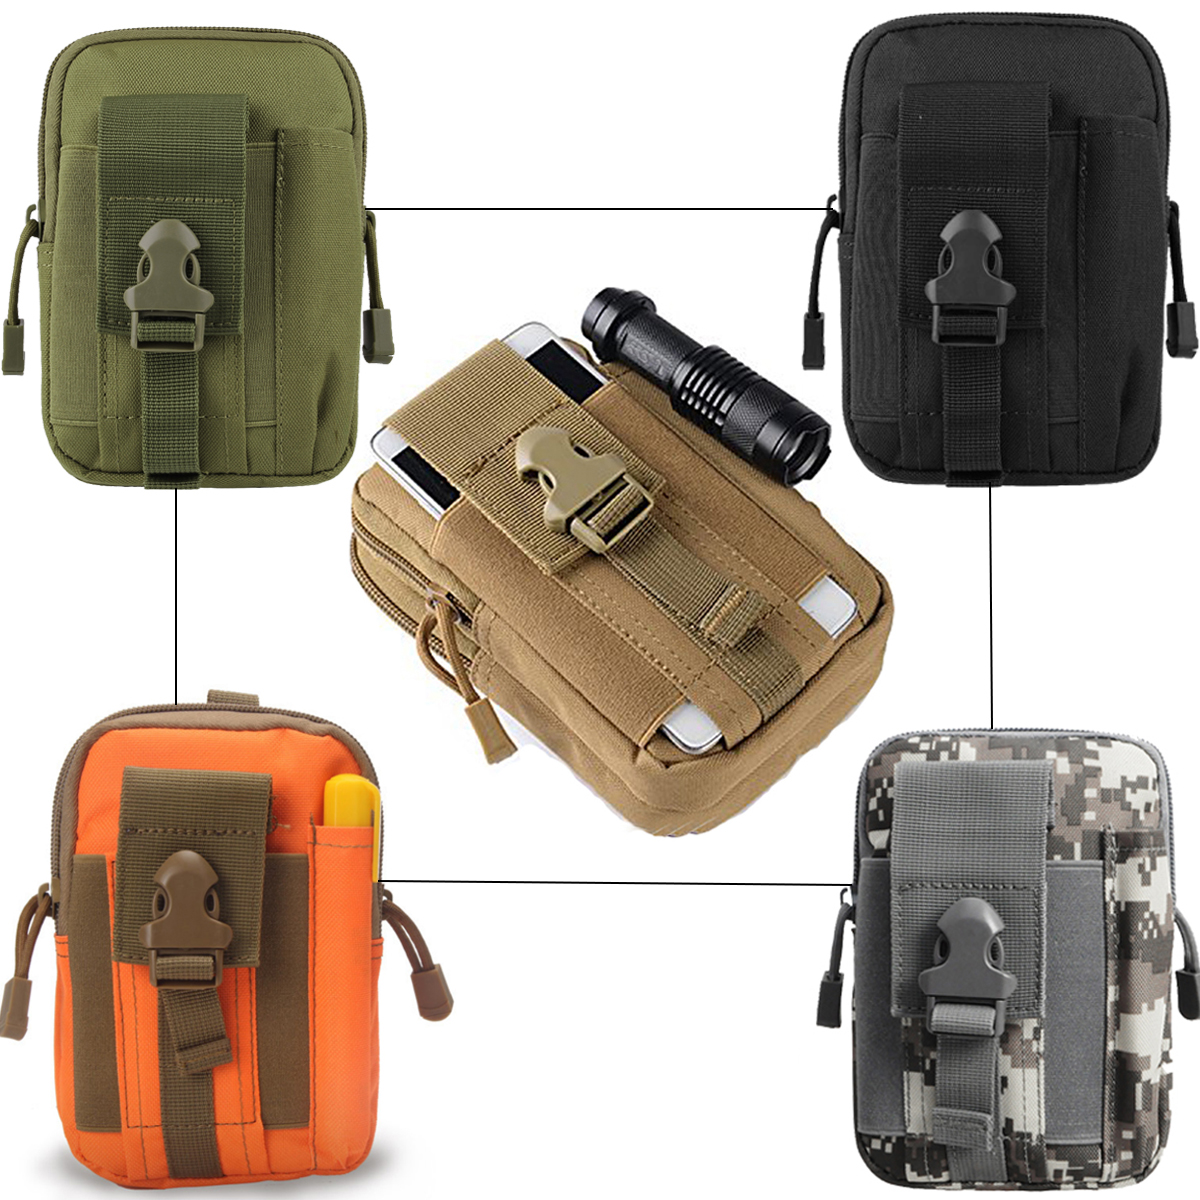 Military Molle Pouch Tactical Belt Waist Bag Outdoor Sport Waterproof Phone Bag Men Casual EDC Tool Pocket Hunting Fanny Pack